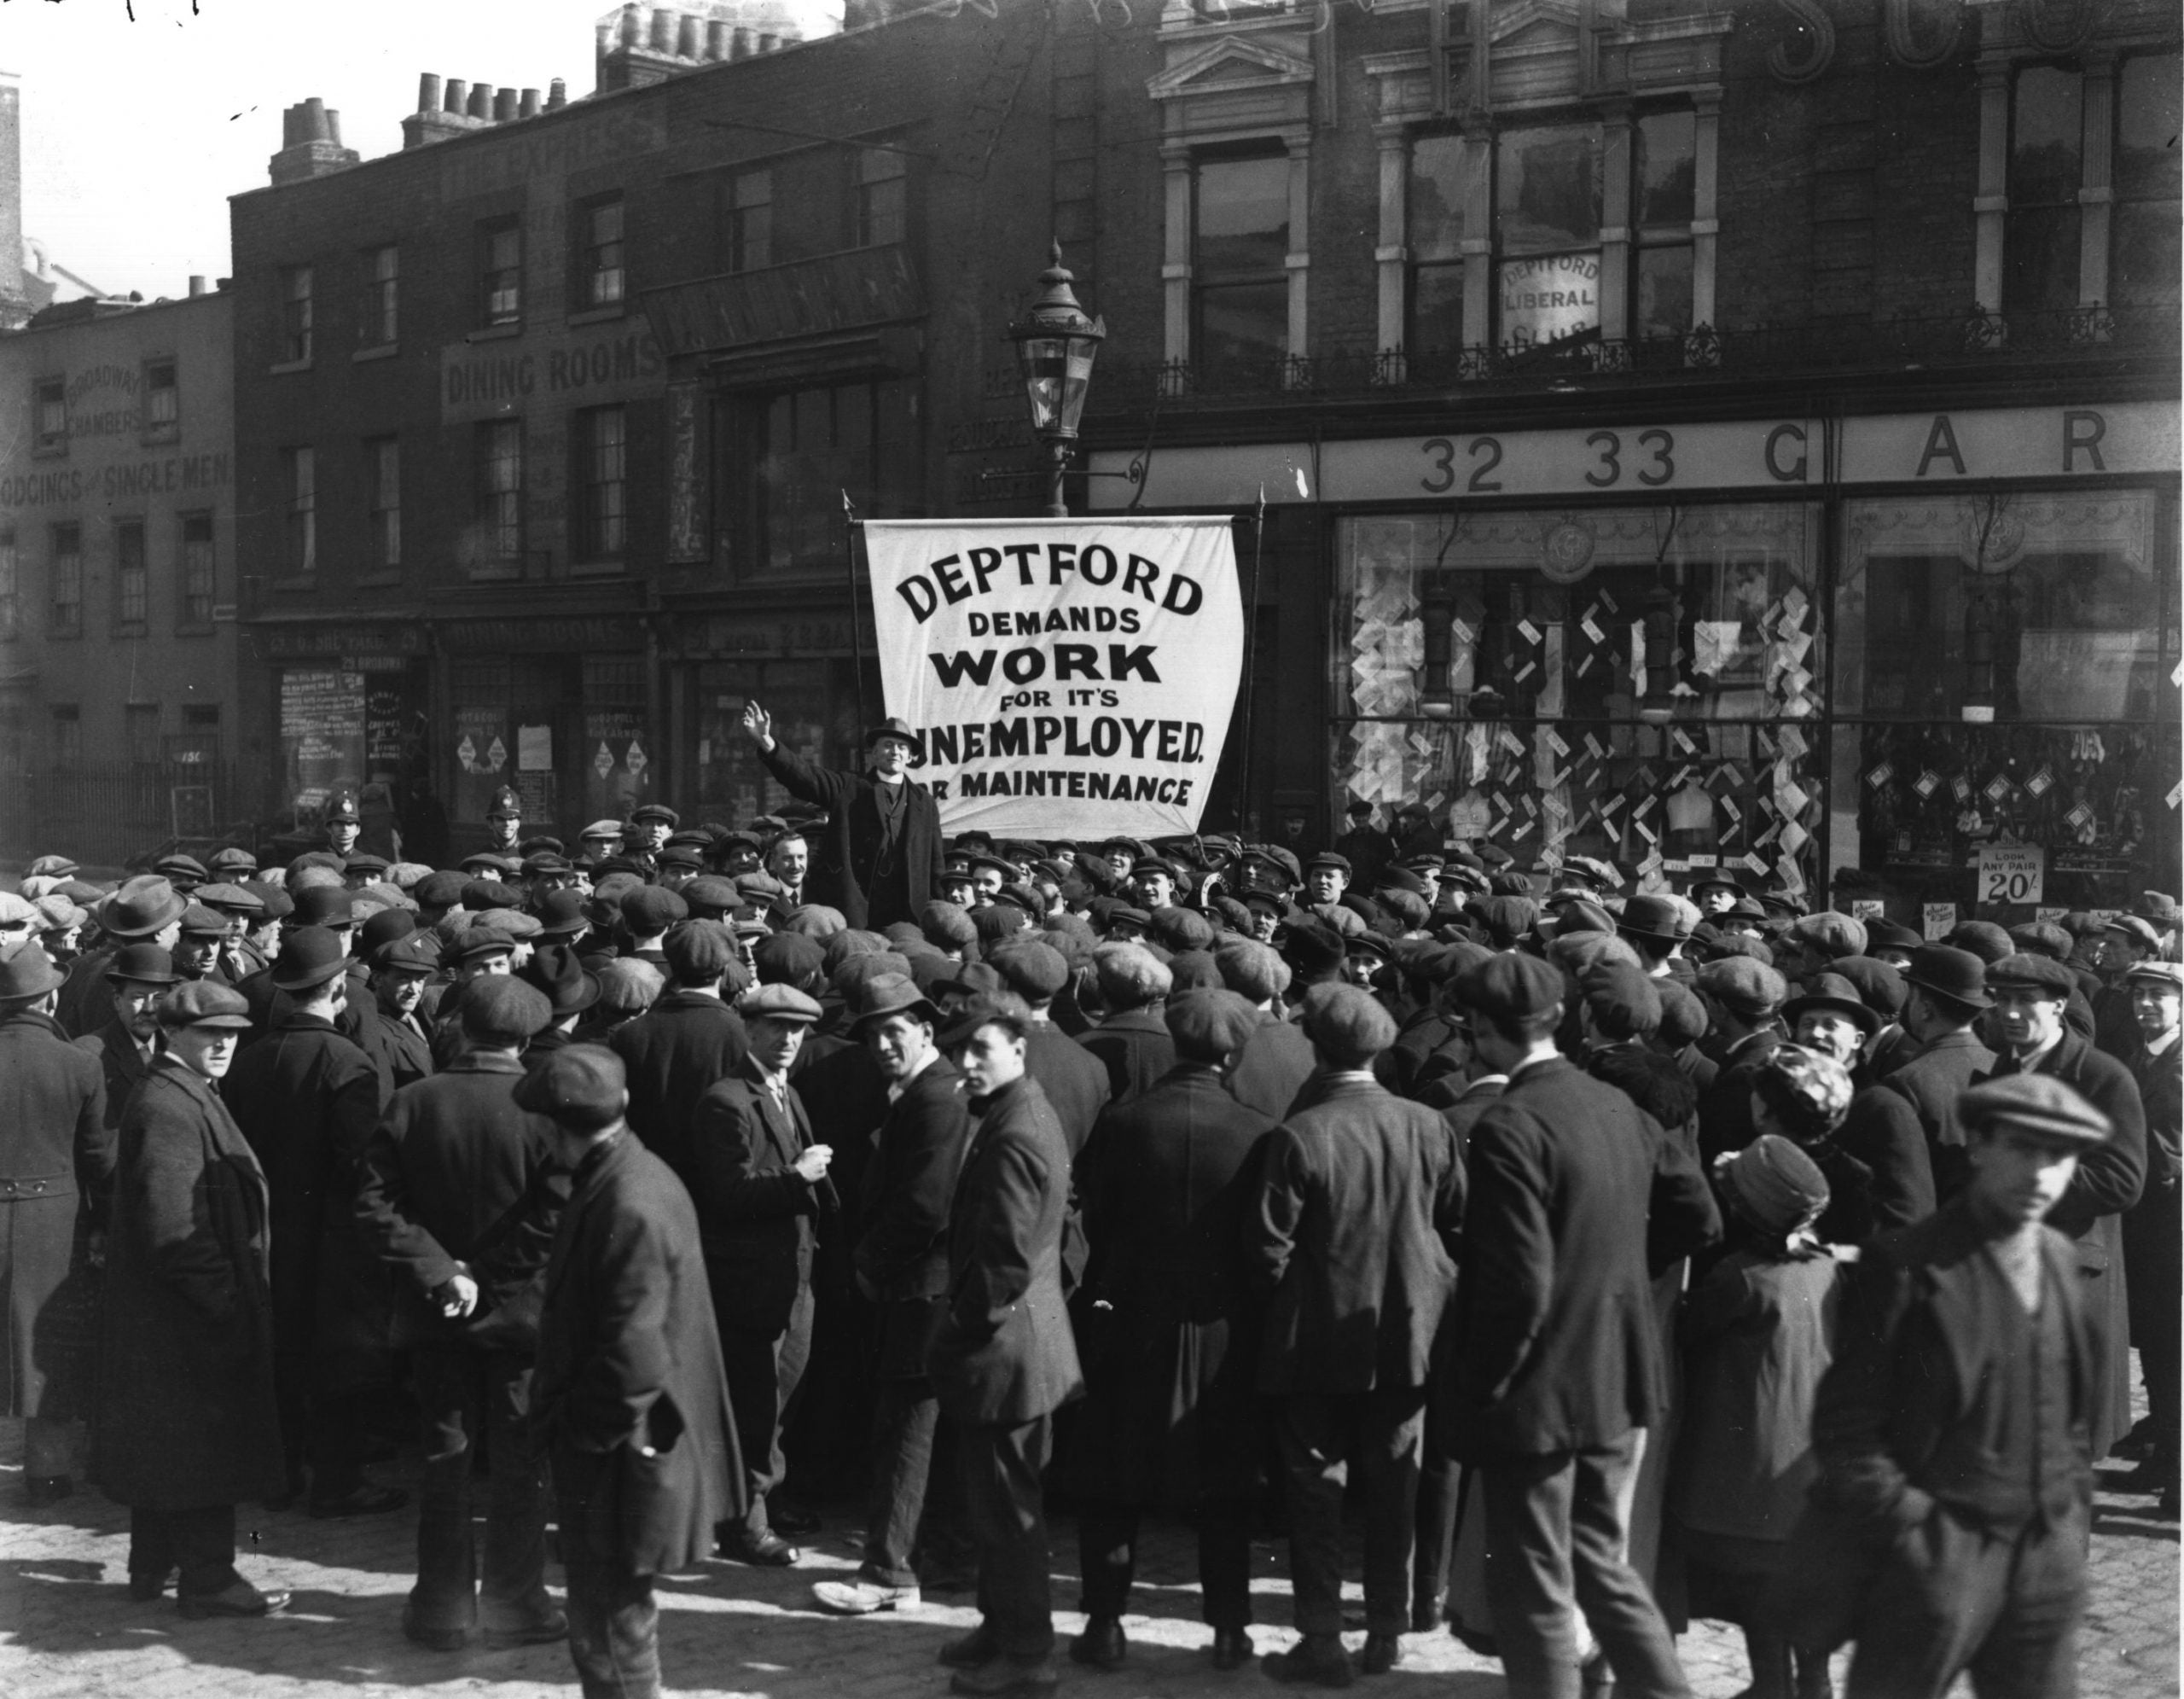 From the NS archive: Ahead of the Great Depression